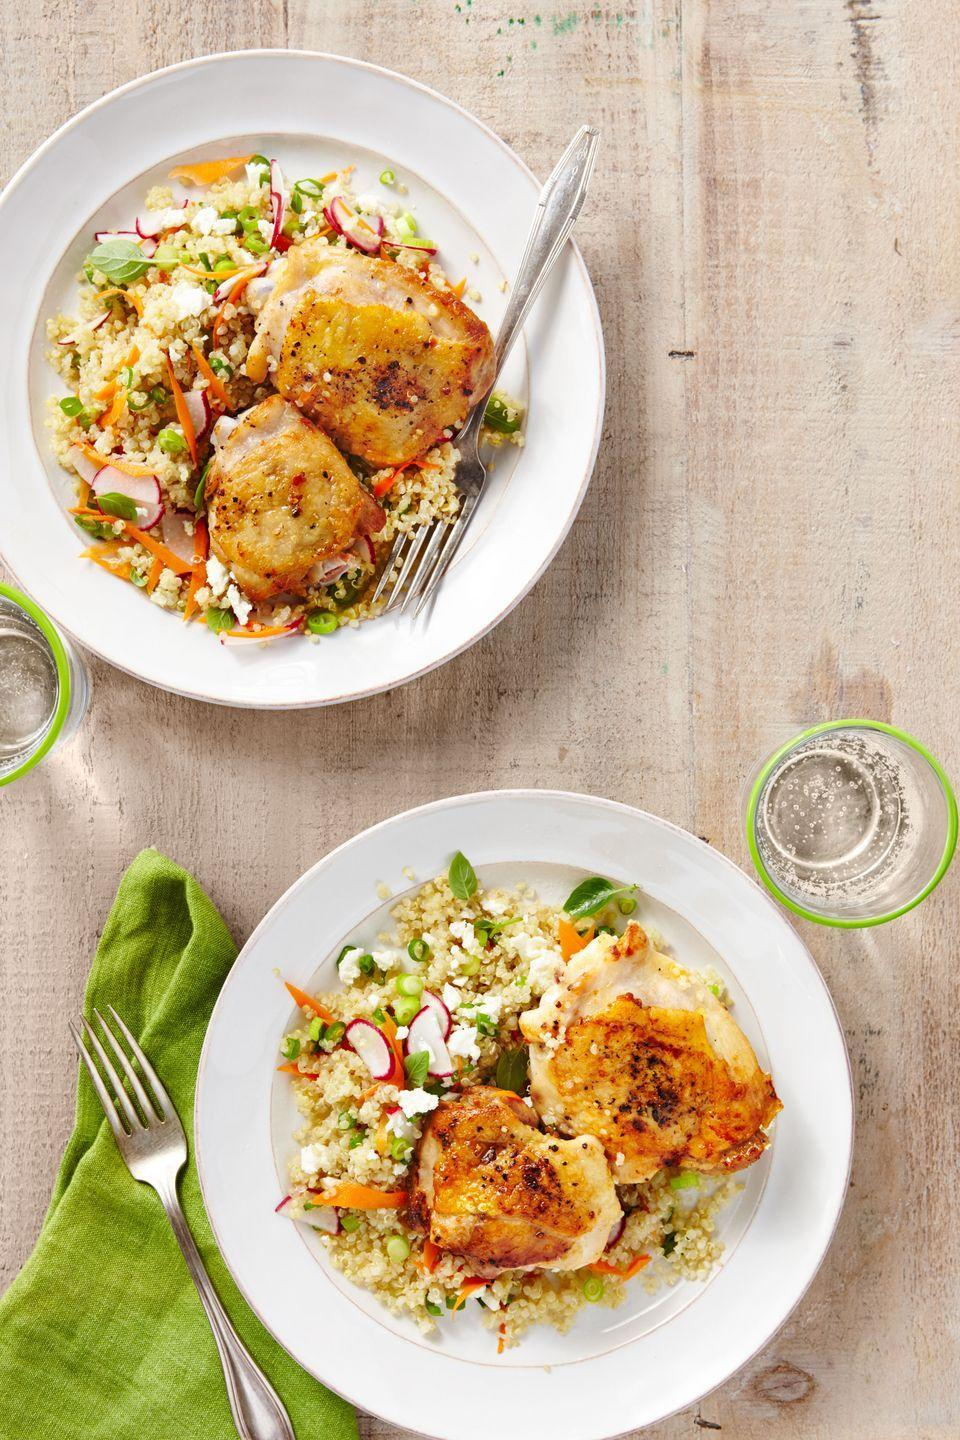 """<p>Delicious and healthy joining forces on a single plate? Dreams do come true!</p><p><strong><a href=""""https://www.countryliving.com/food-drinks/recipes/a37757/salt-and-pepper-chicken-with-spring-quinoa-pilaf-recipe/"""" rel=""""nofollow noopener"""" target=""""_blank"""" data-ylk=""""slk:Get the recipe"""" class=""""link rapid-noclick-resp"""">Get the recipe</a>.</strong></p>"""